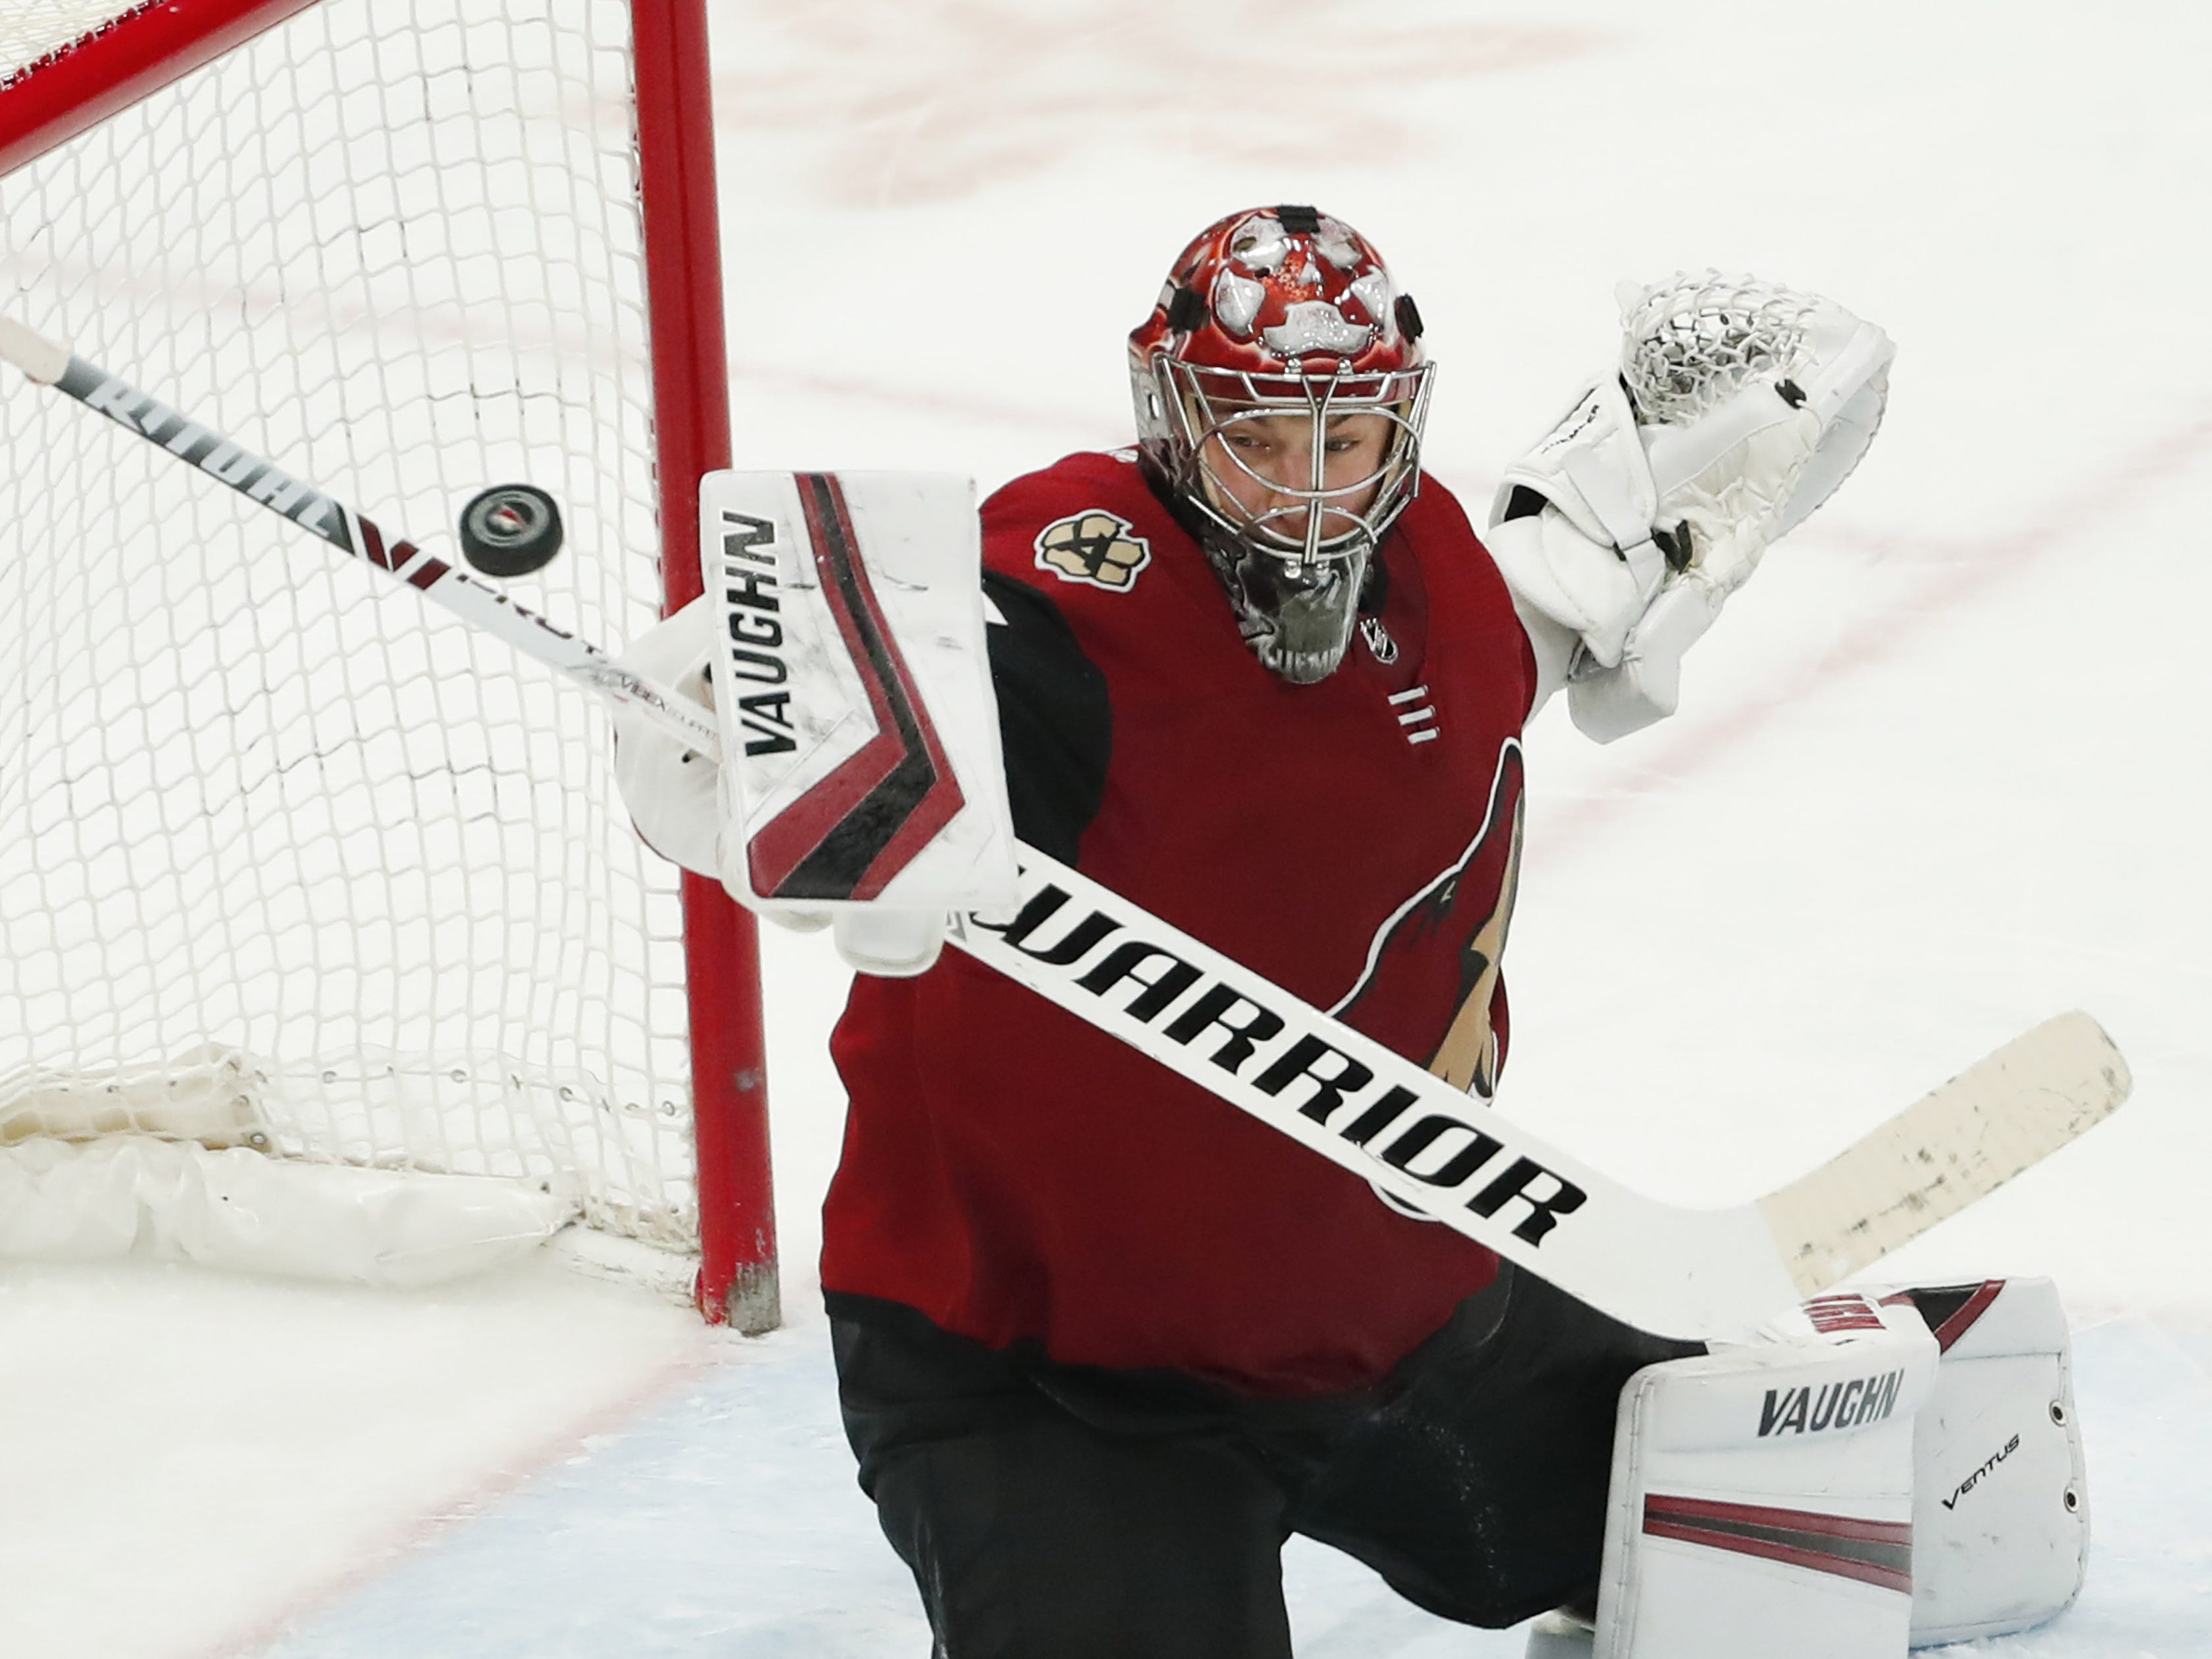 Arizona Coyotes goaltender Darcy Kuemper (35) makes a save against the Minnesota Wild during the third period in Glendale March 31, 2019.